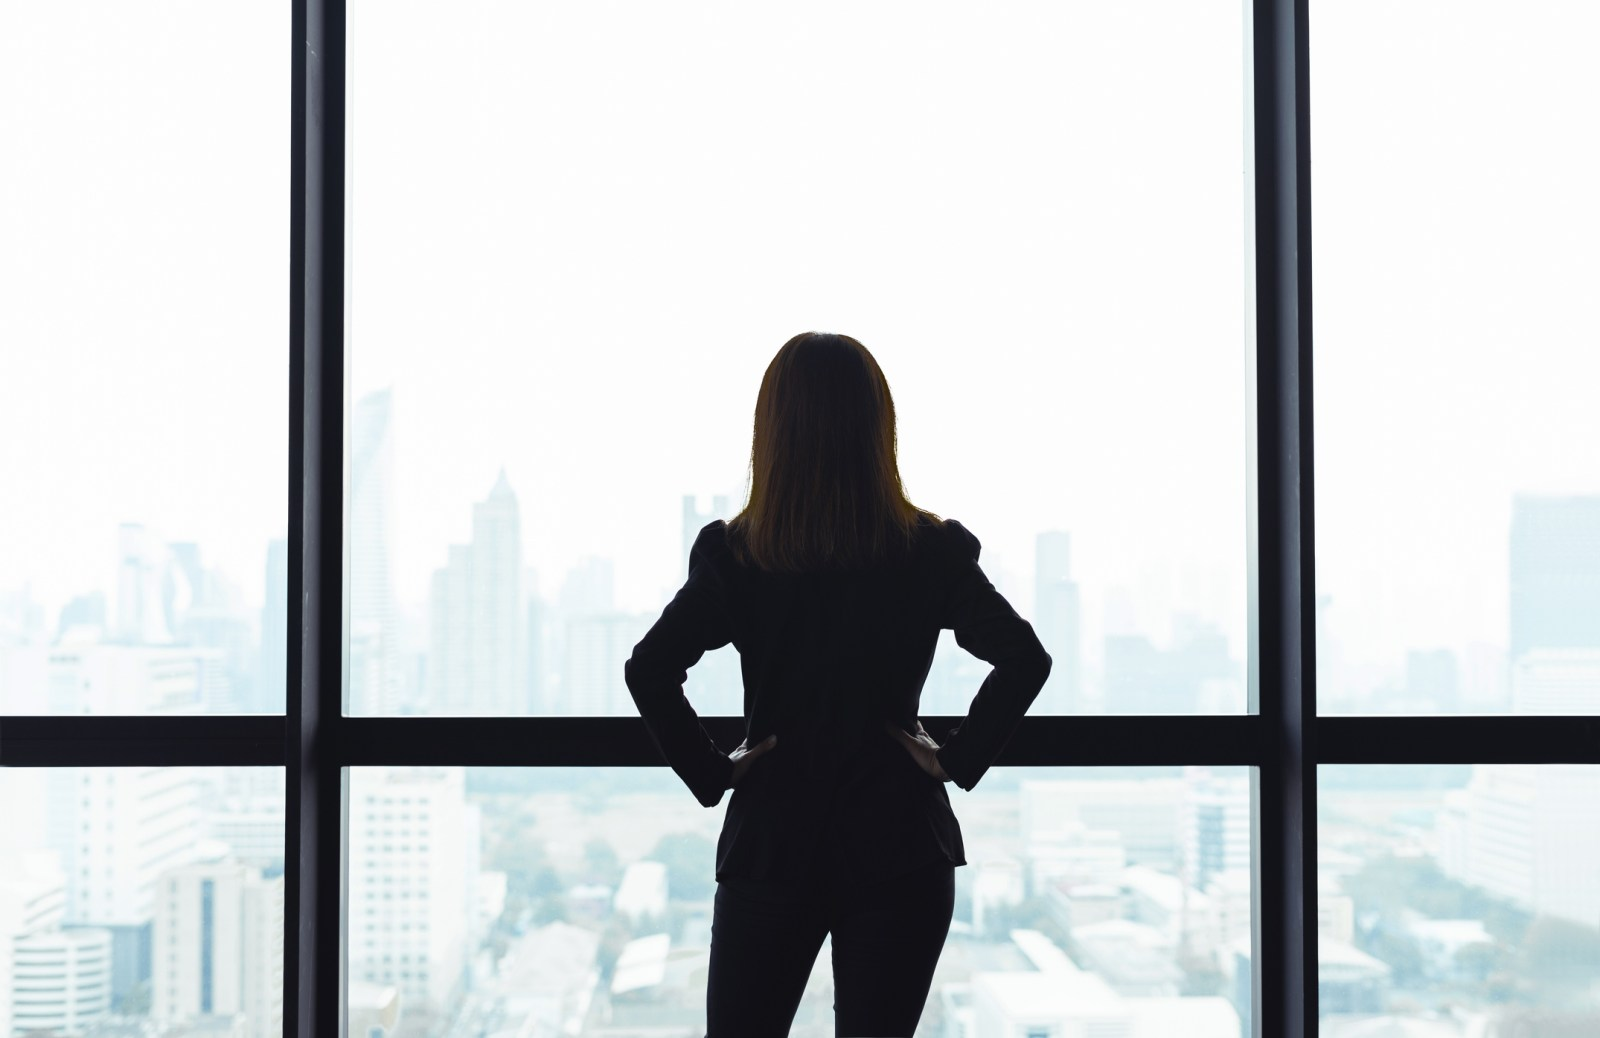 Female Ceos Face Greater Penalties Than Male Ceos For Ethical Transgressions